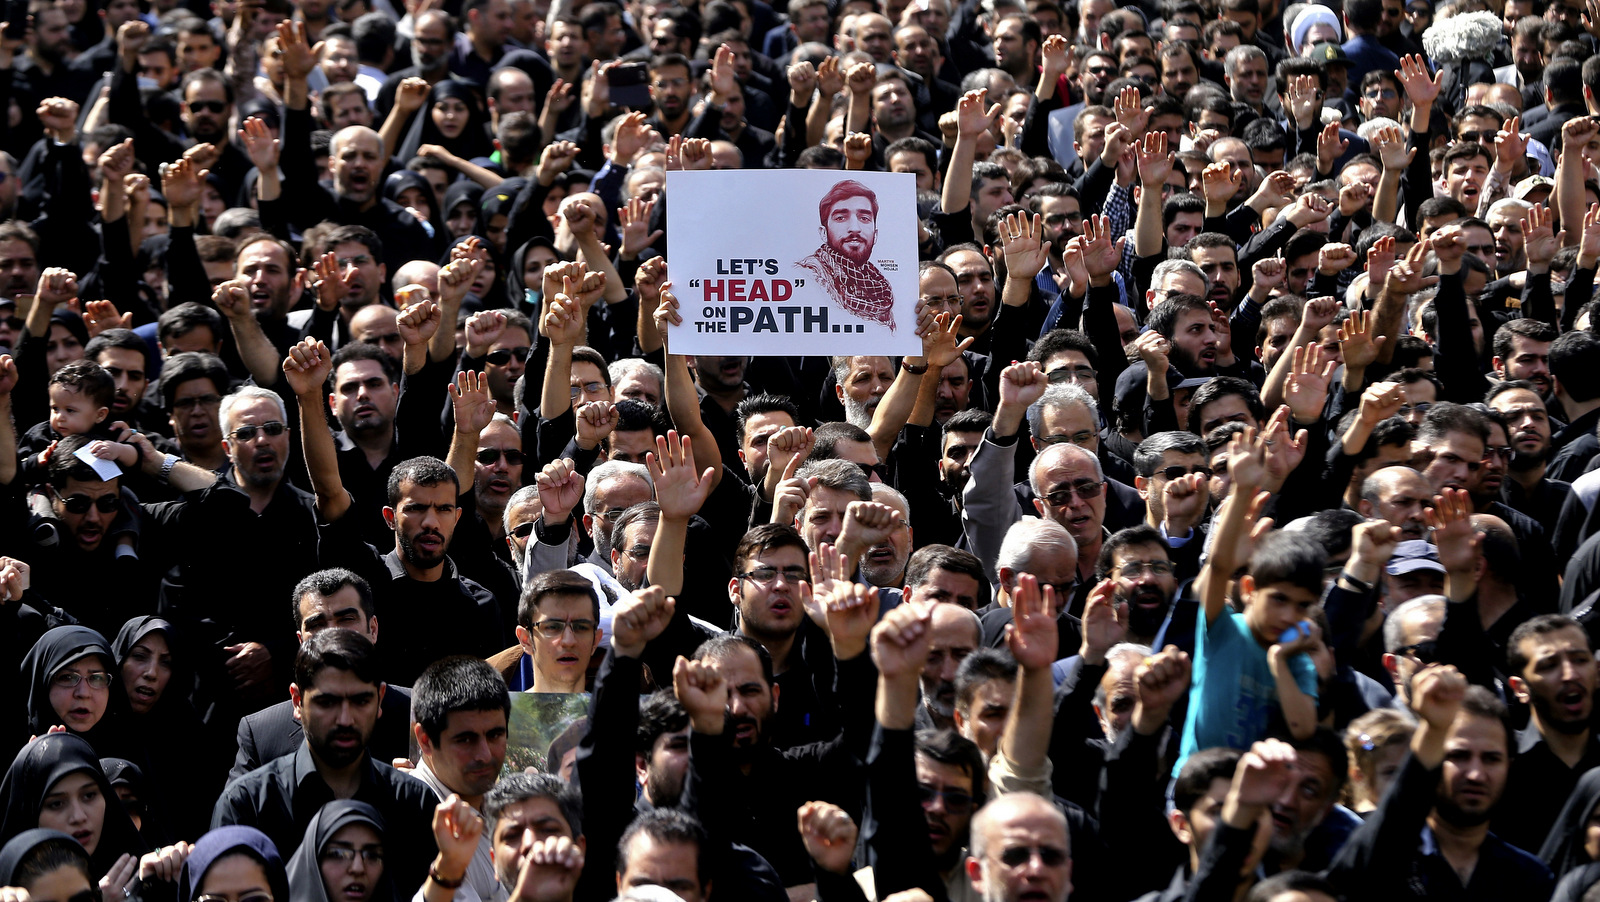 Thousands of Iranians attend the funeral of Mohsen Hojaji, an Iranian soldier beheaded by ISIS in Syria, in Tehran, Iran, Sept. 27, 2017.(AP/Ebrahim Noroozi)